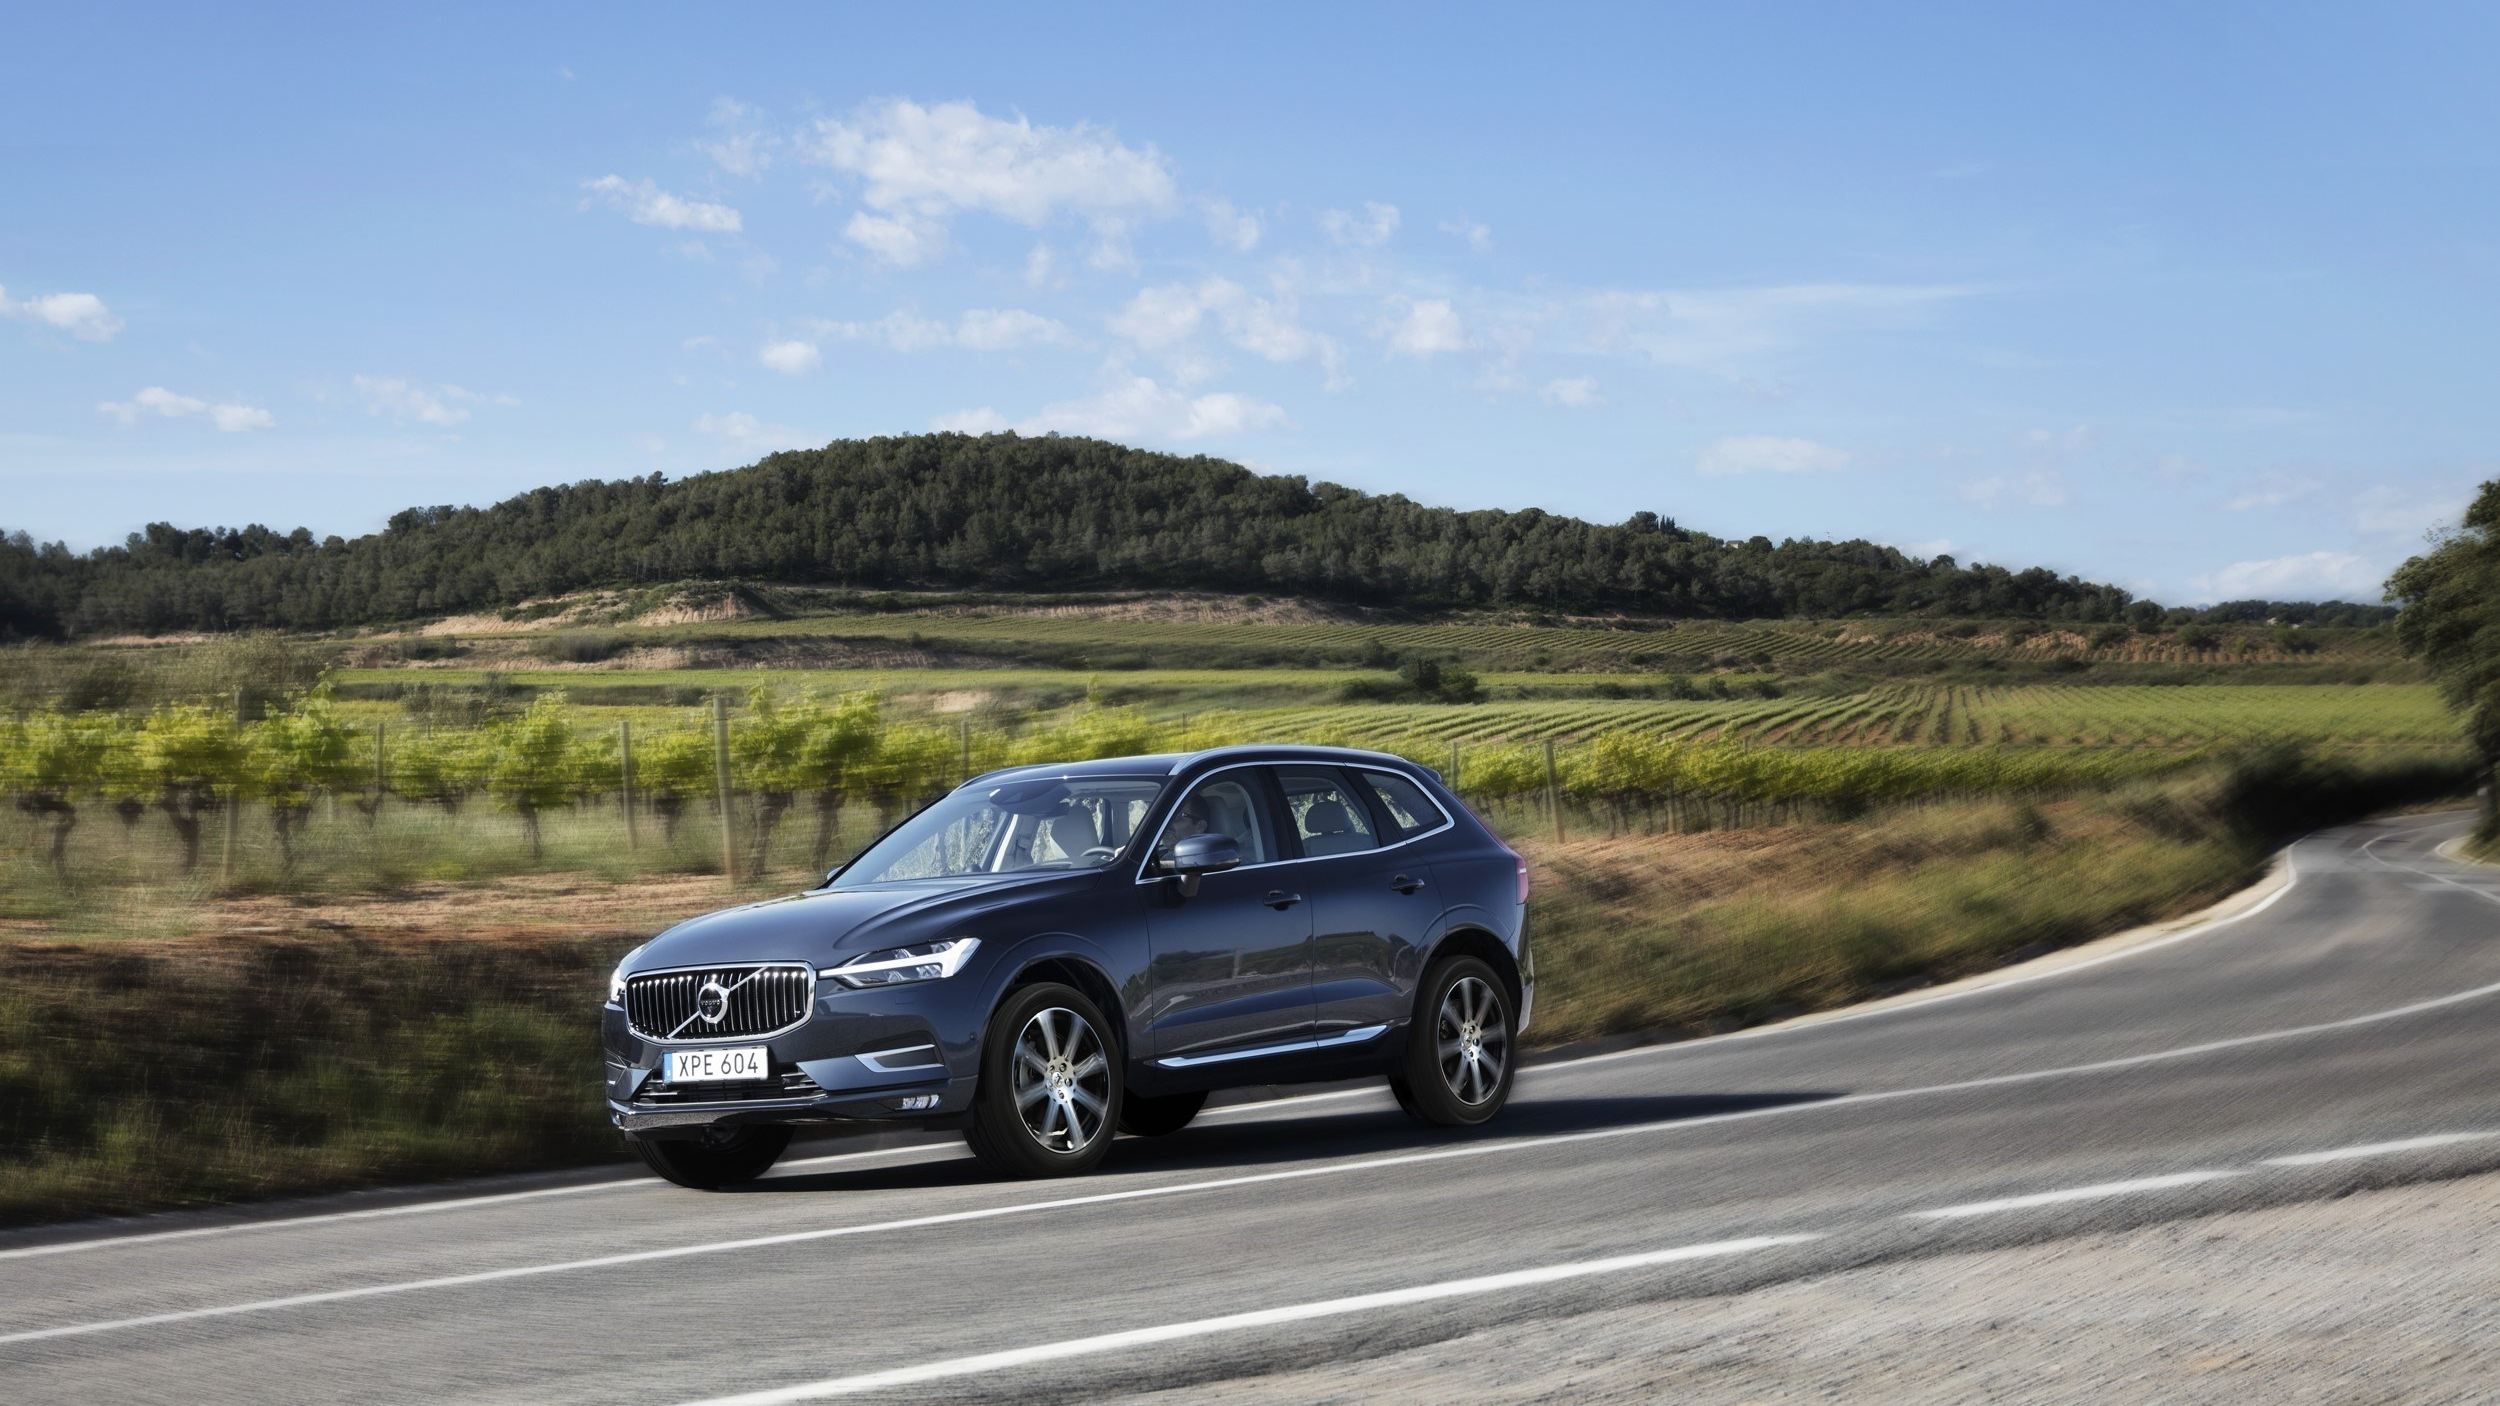 All New Volvo Cars Will Have Electric Engines Starting In 2019